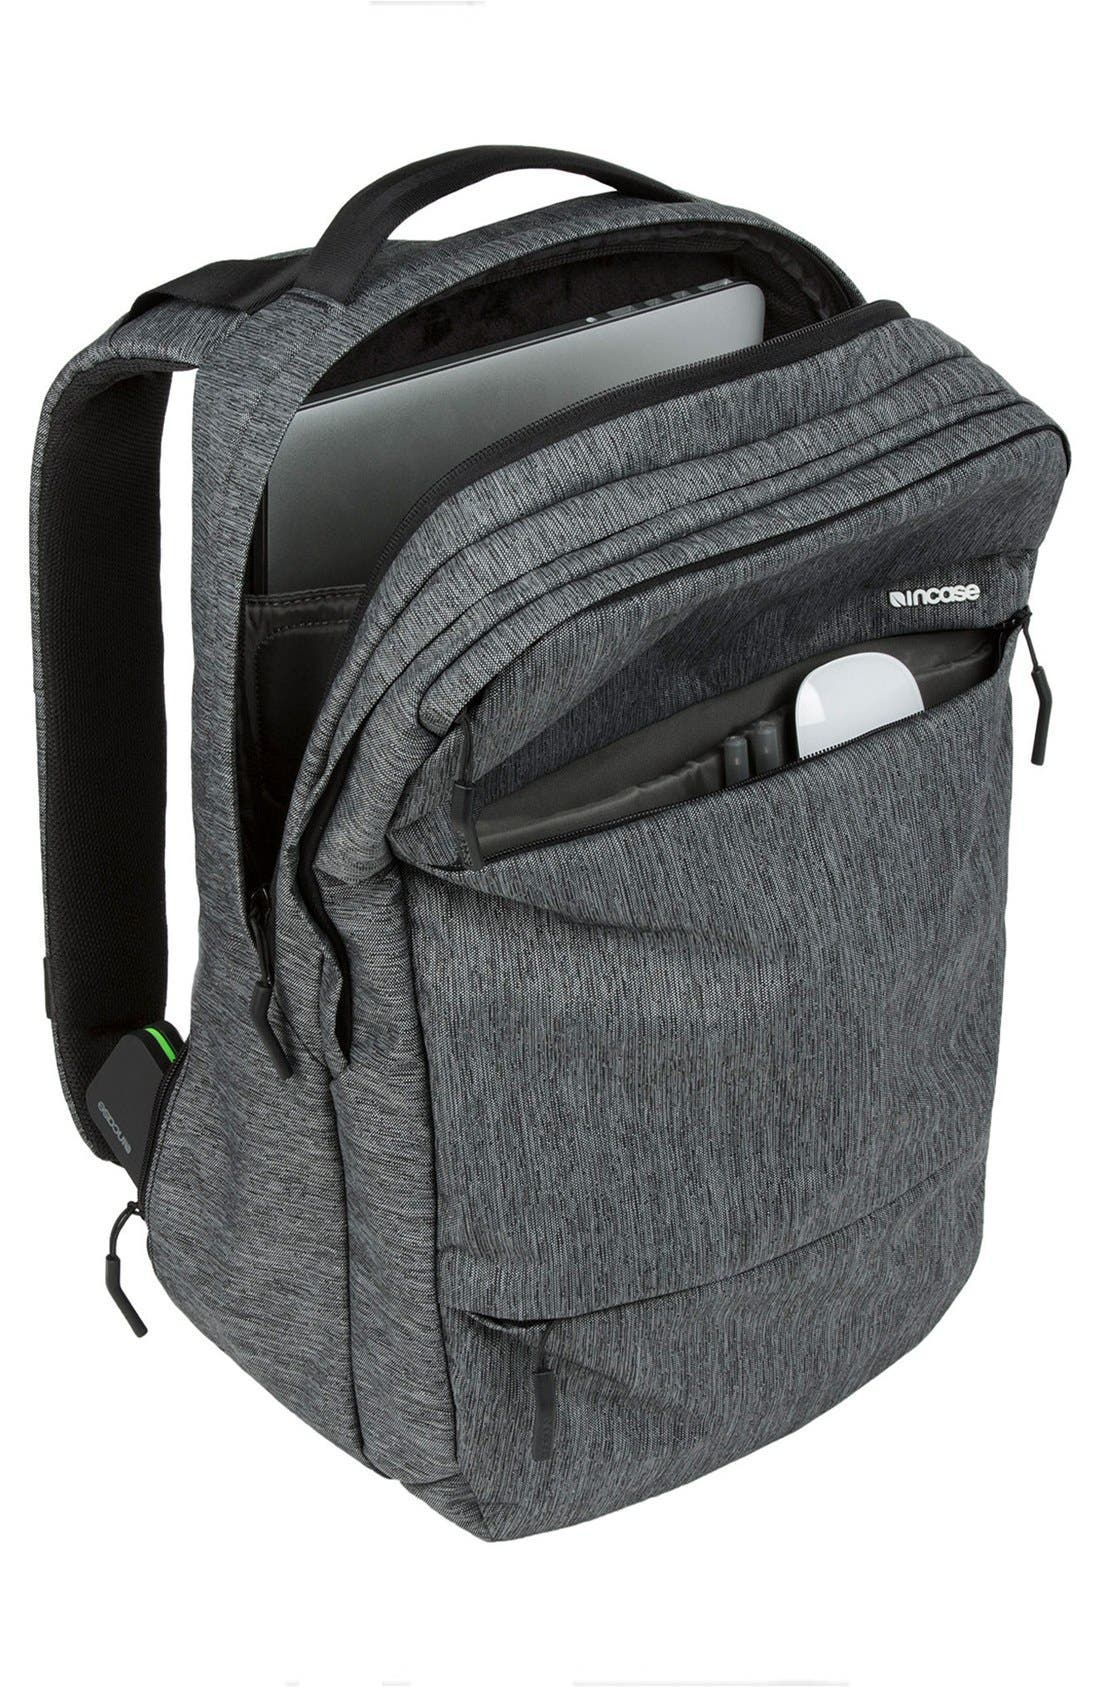 City Collection Backpack,                             Alternate thumbnail 3, color,                             HEATHER BLACK/ GUNMETAL GREY